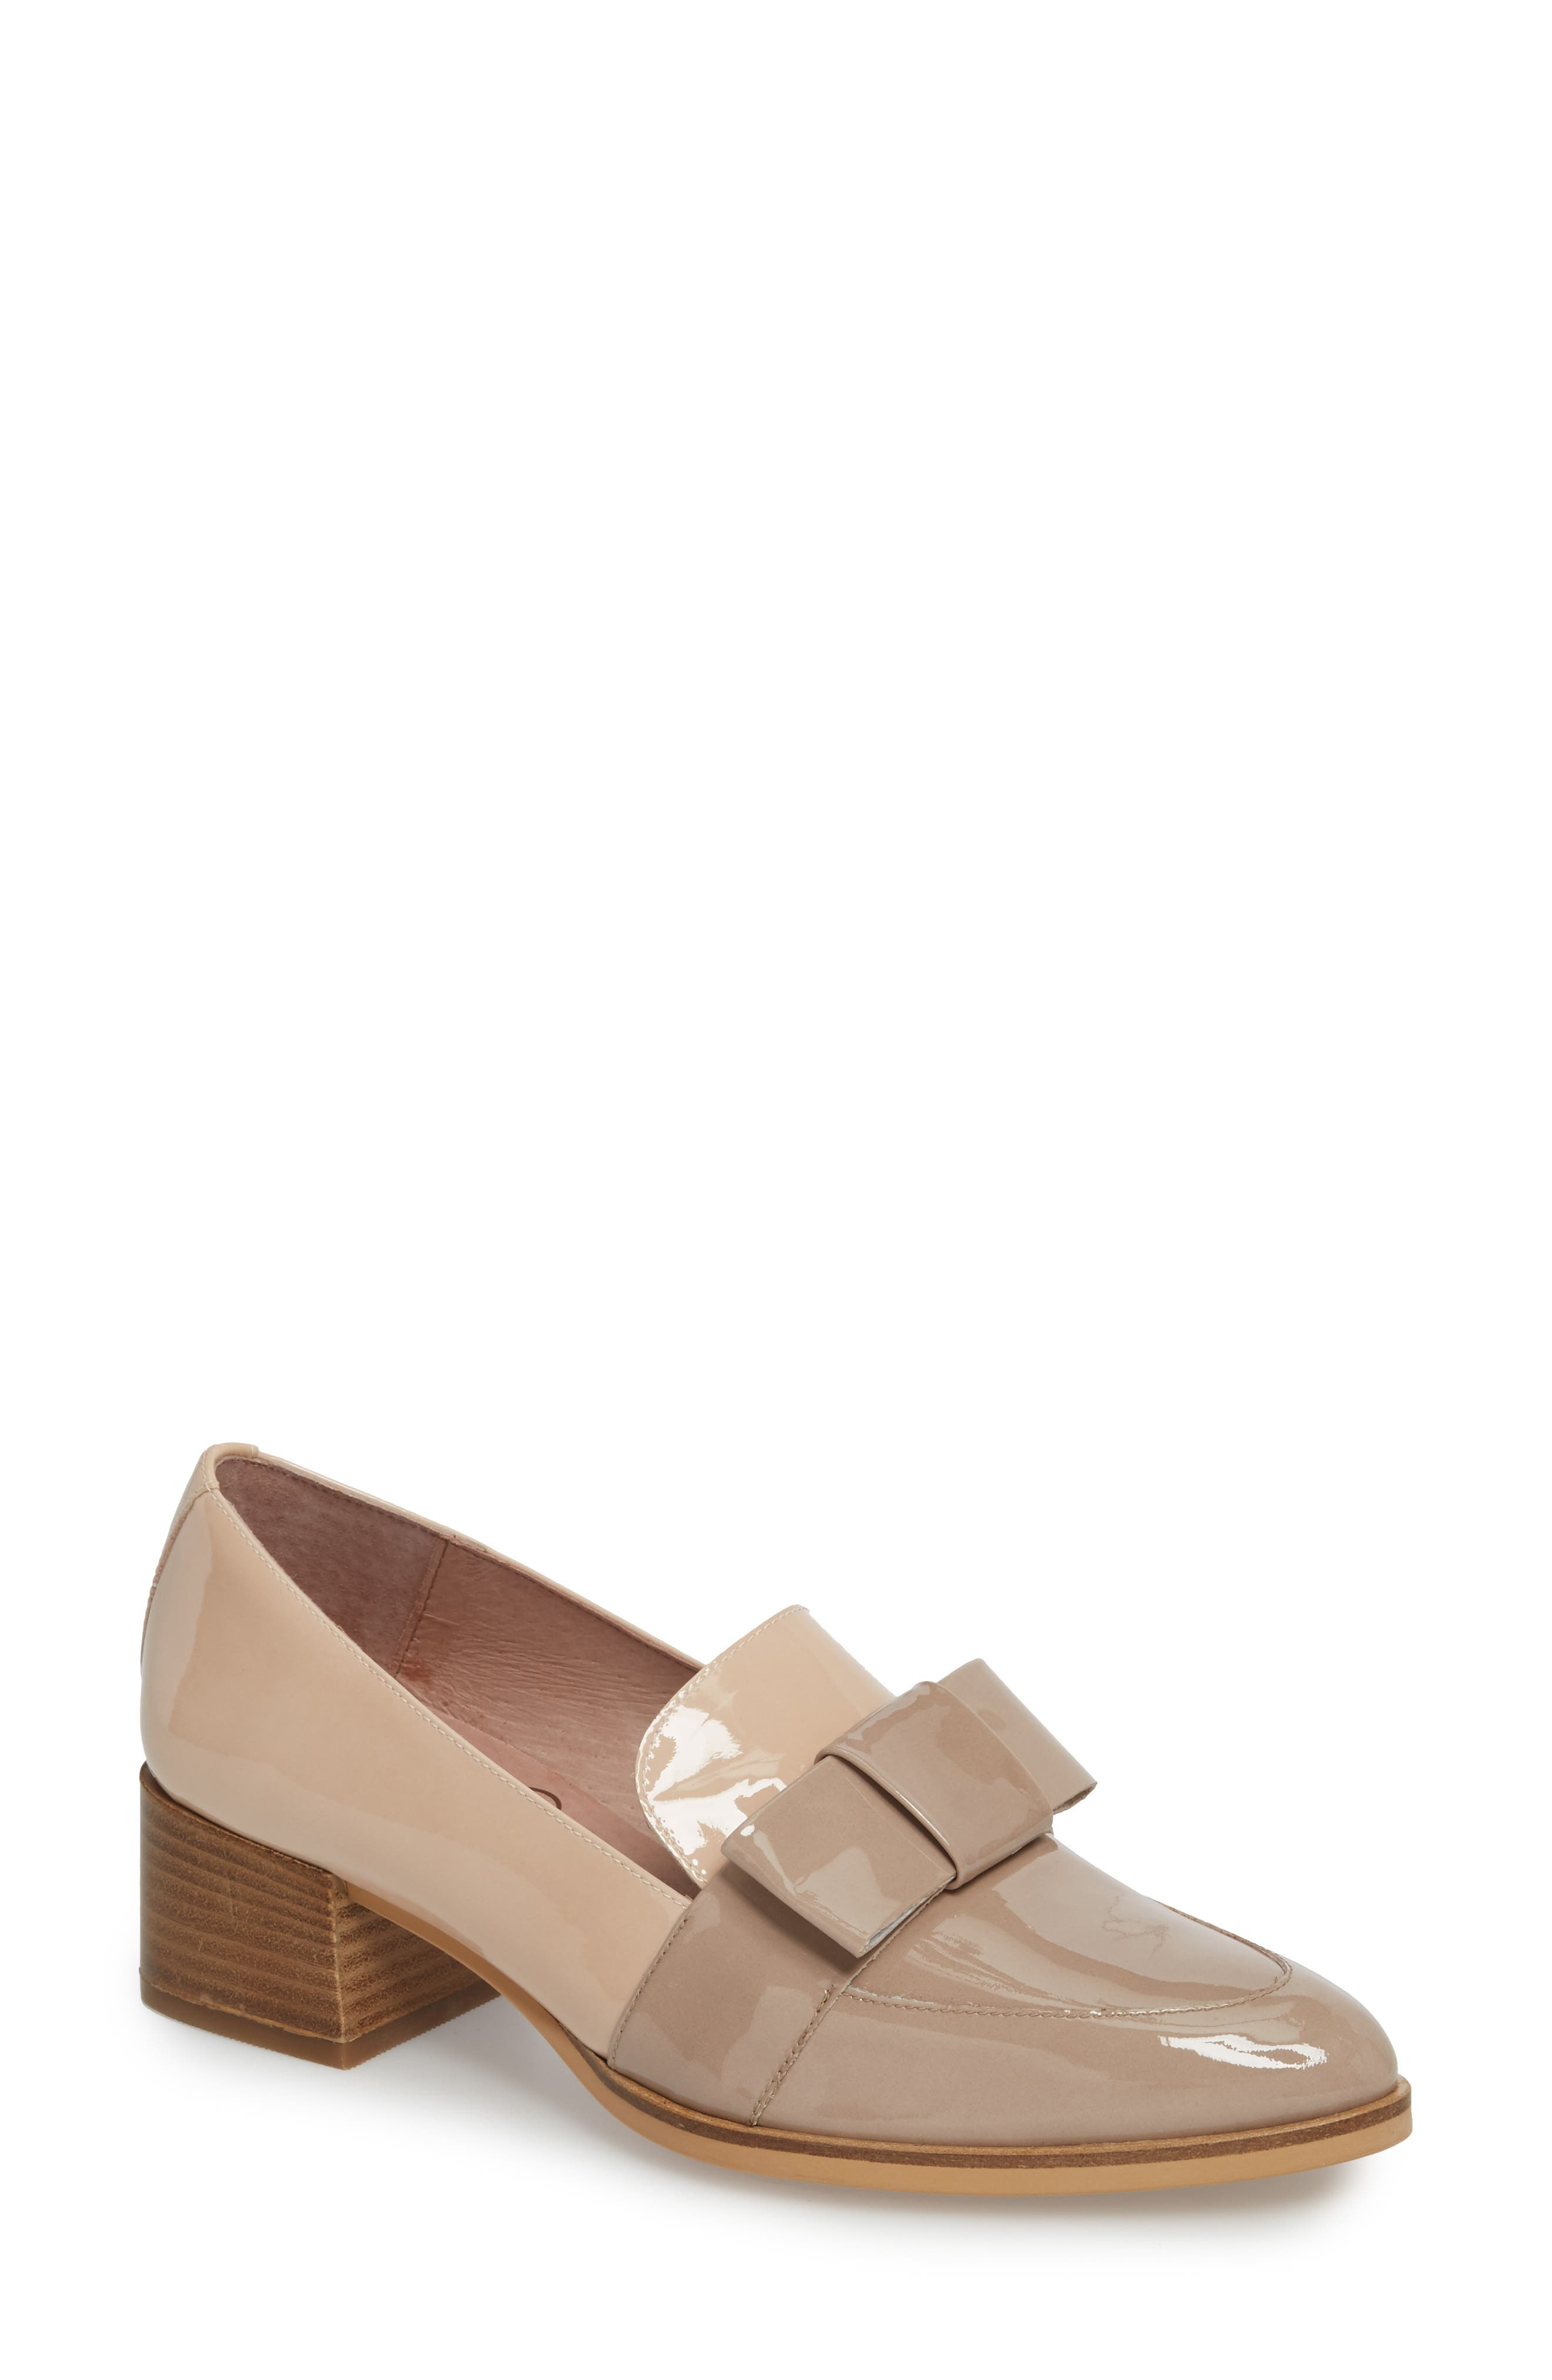 Block Heel Loafer Pump,                             Main thumbnail 1, color,                             TAUPE/ PALO PATENT LEATHER